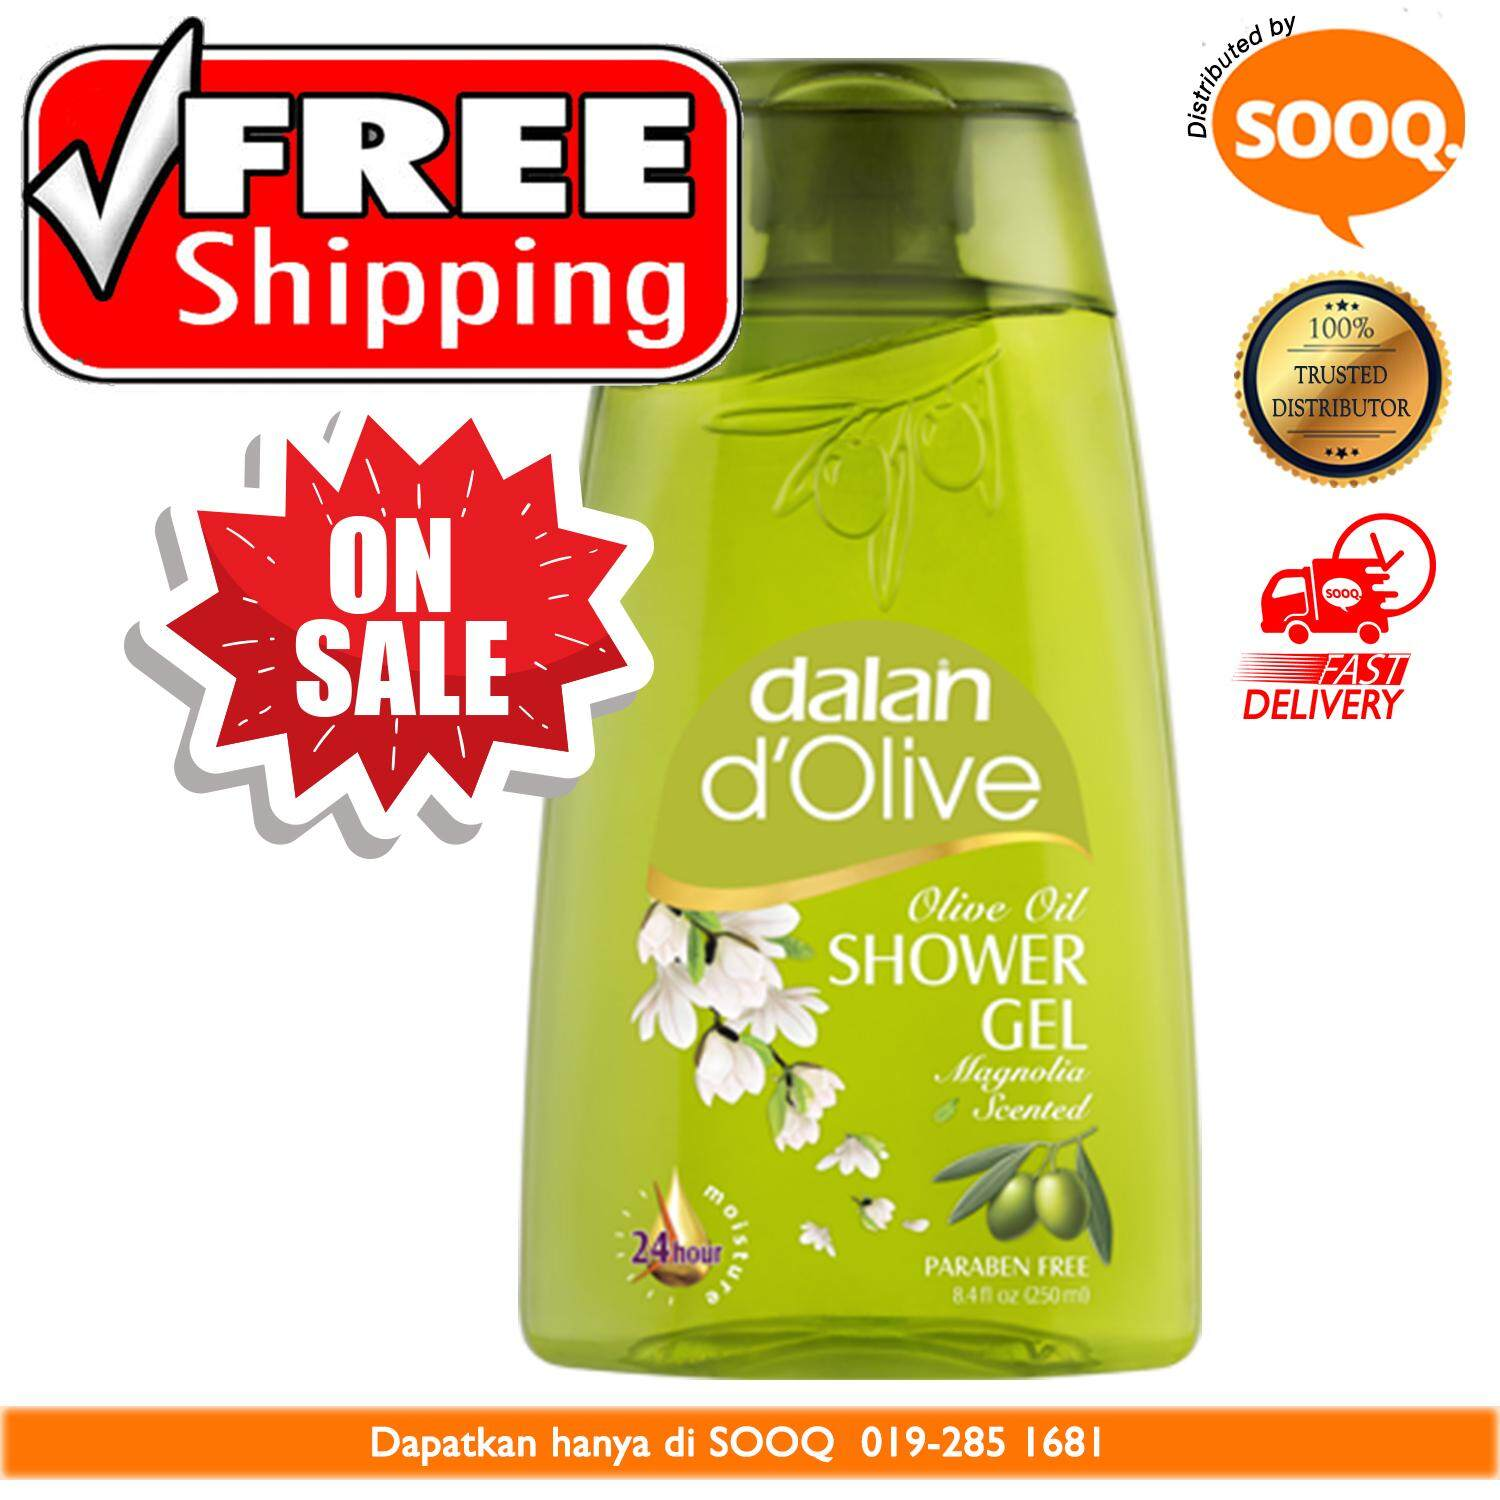 Dalan Dolive Buy At Best Price In Malaysia Www D Olive Body Oil 250ml 1 Promotion Shower Gel Magnolia